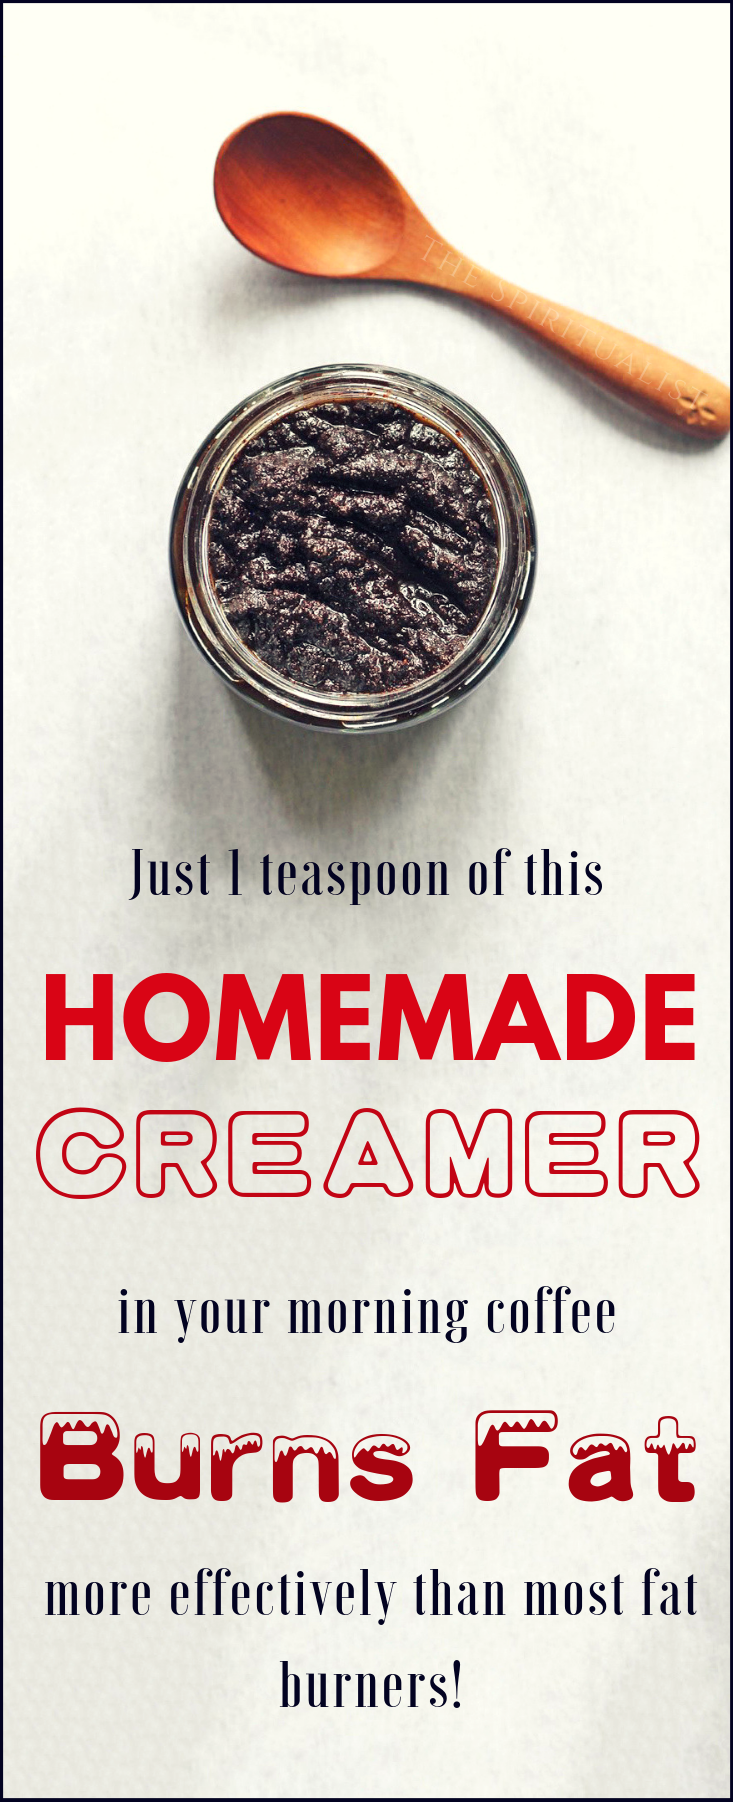 Are Homemade fat burners